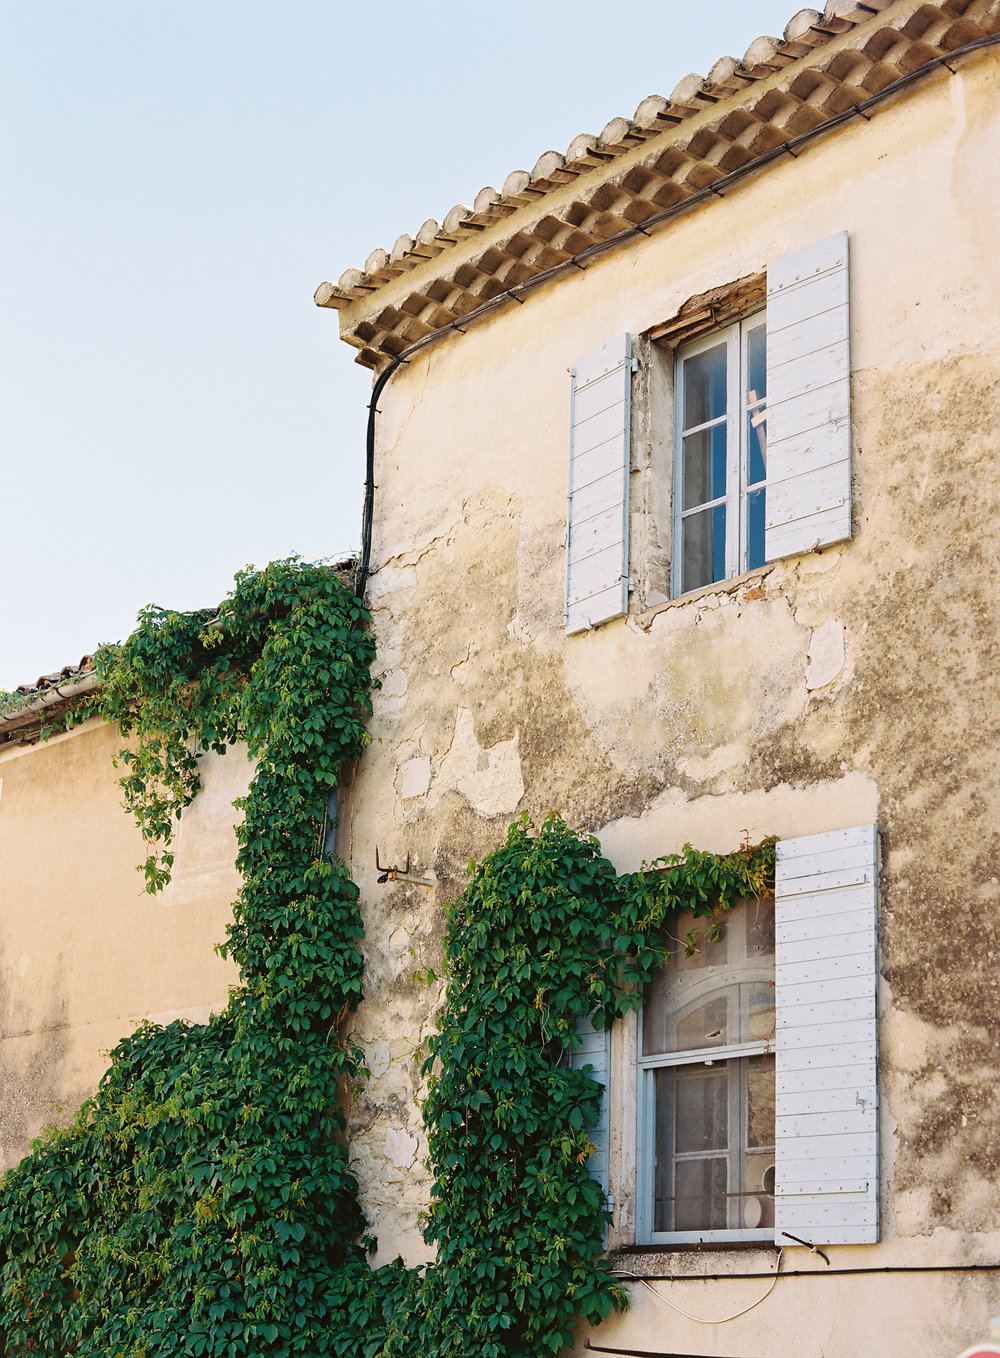 Provencal vibes